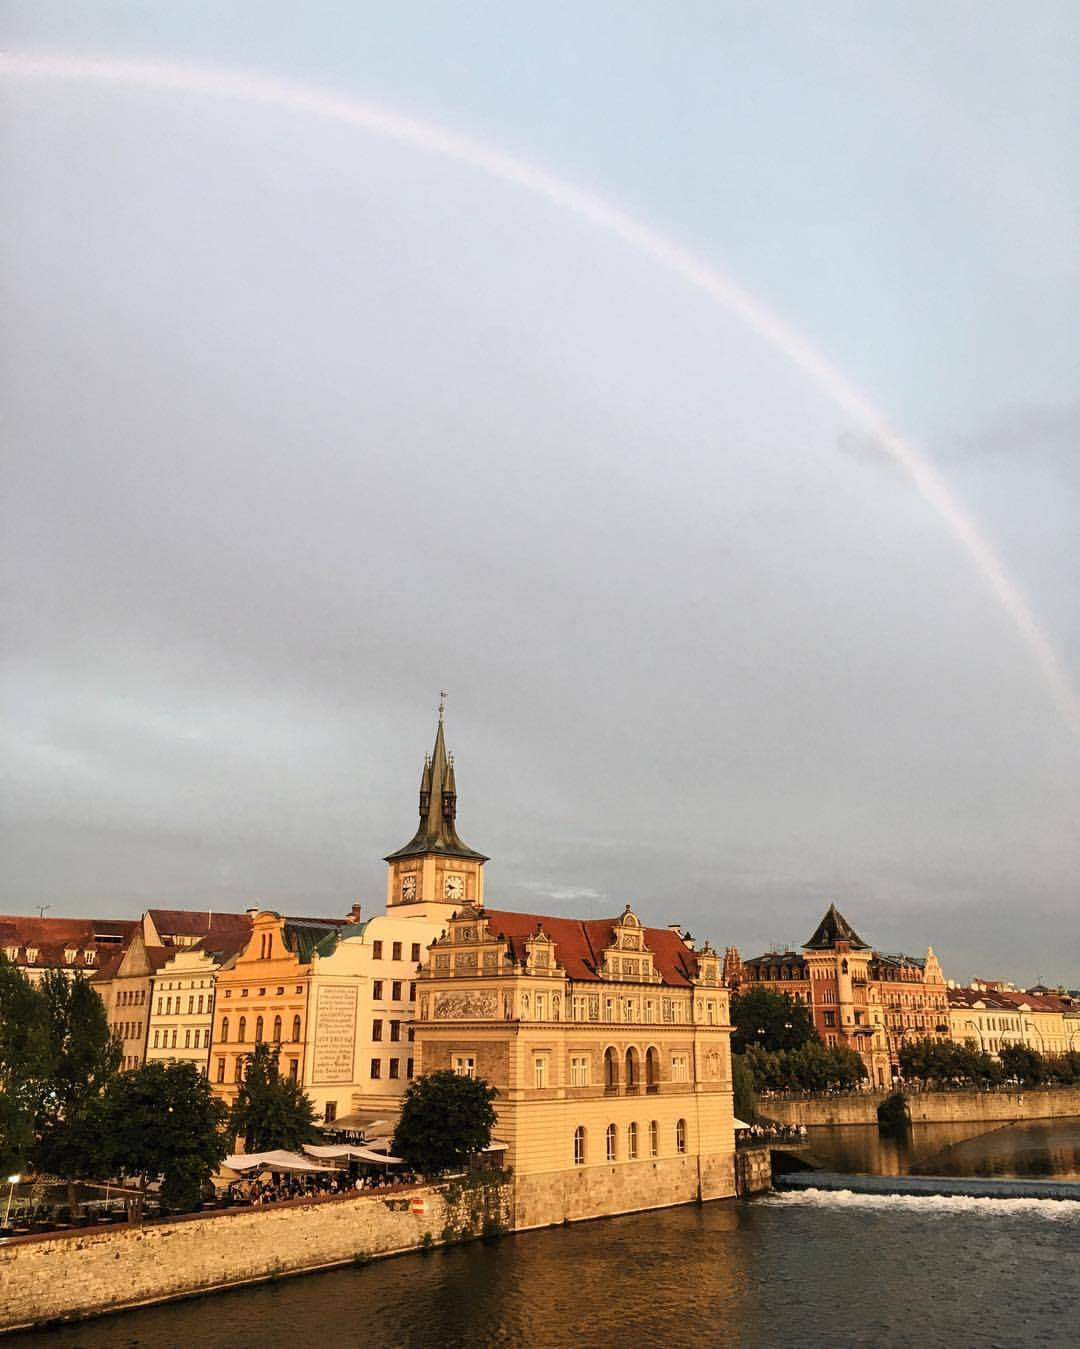 🌈 (at Charles Bridge)